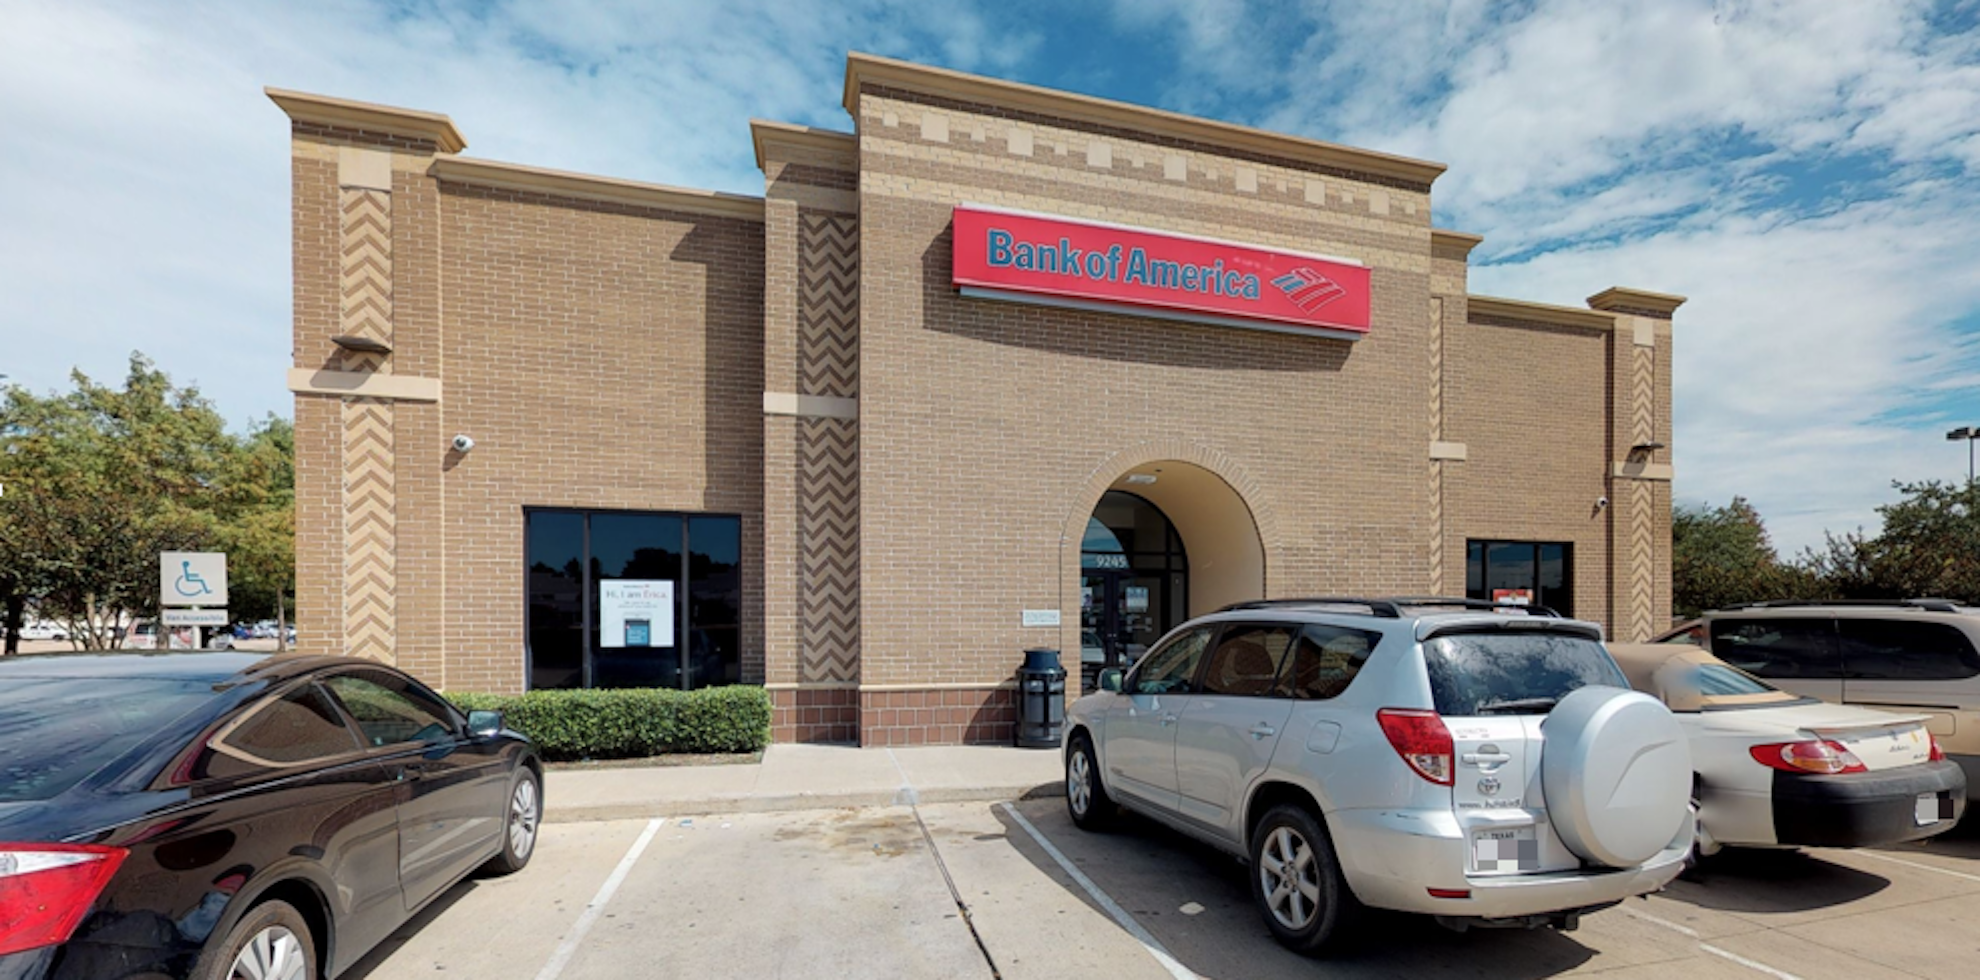 Bank of America financial center with drive-thru ATM and teller | 9245 Highway 6 S, Houston, TX 77083